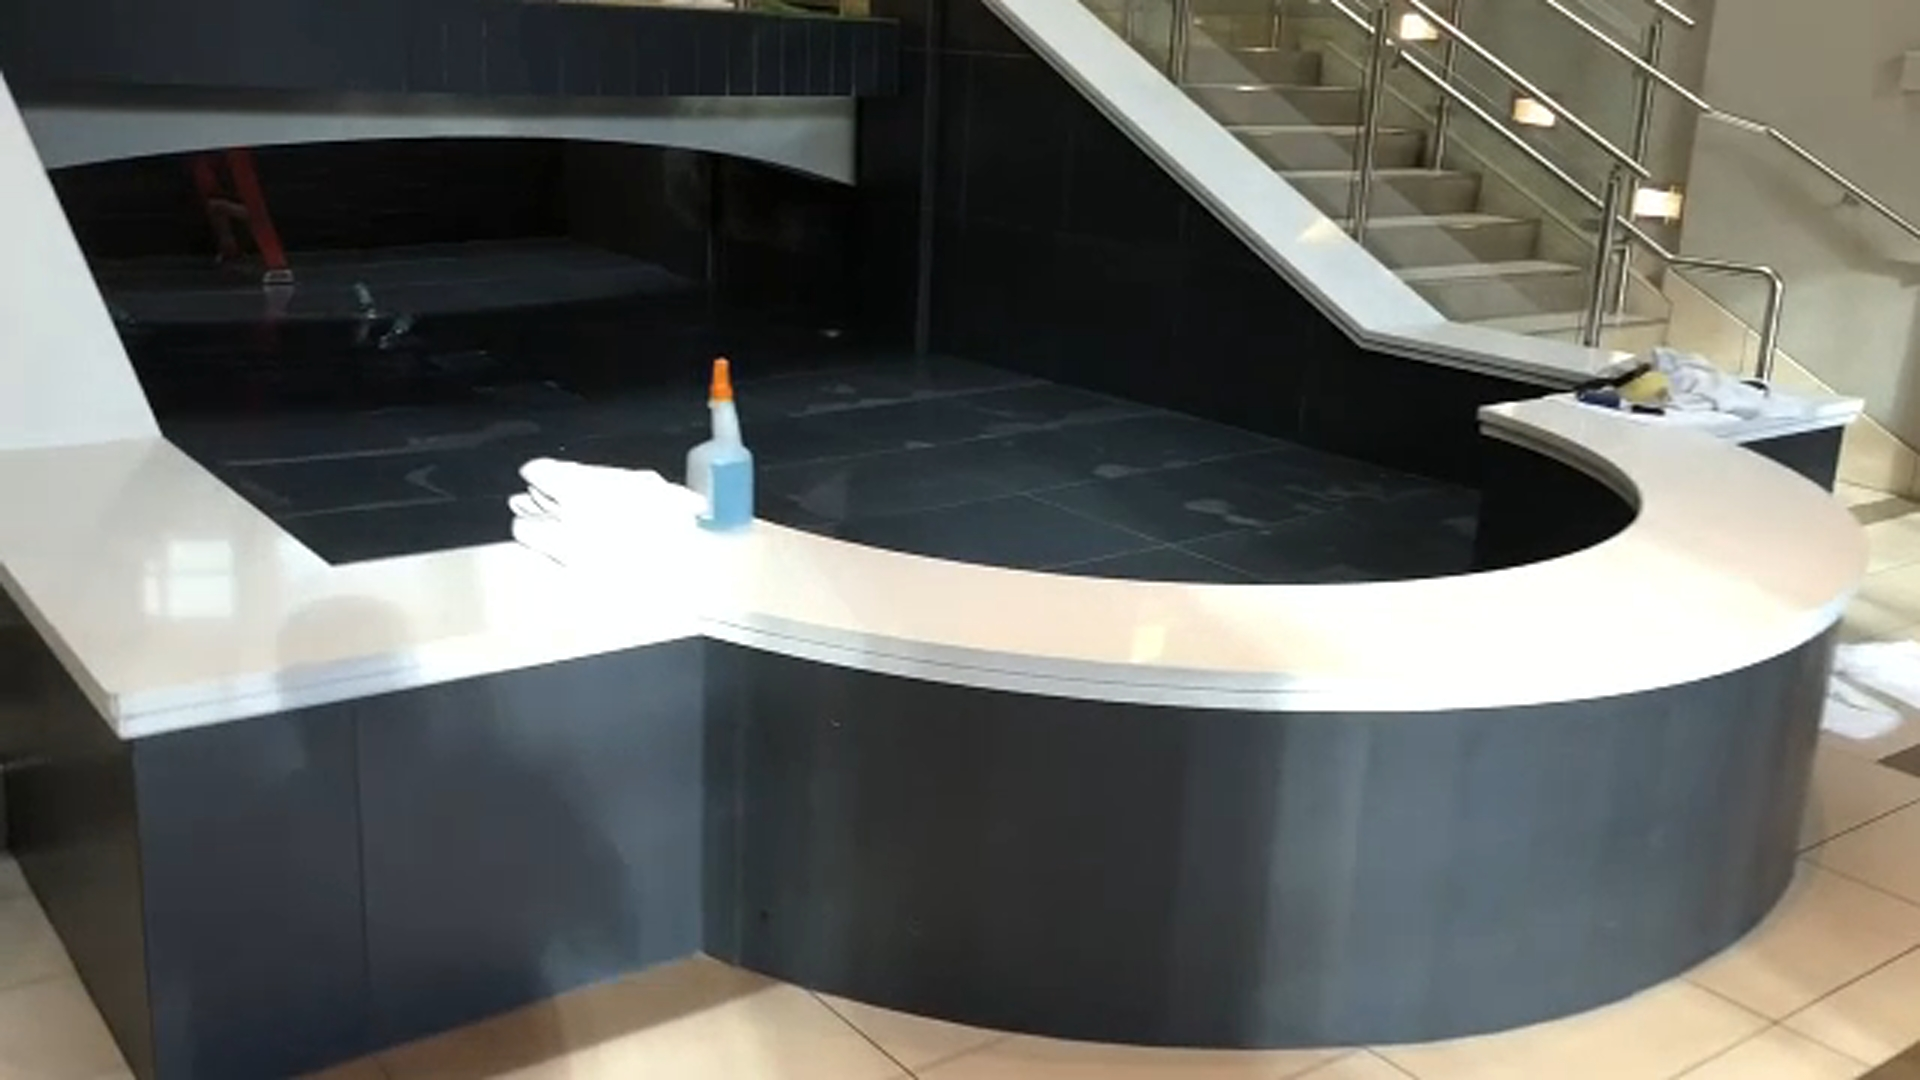 A closed water feature inside the Embassy Suites hotel.